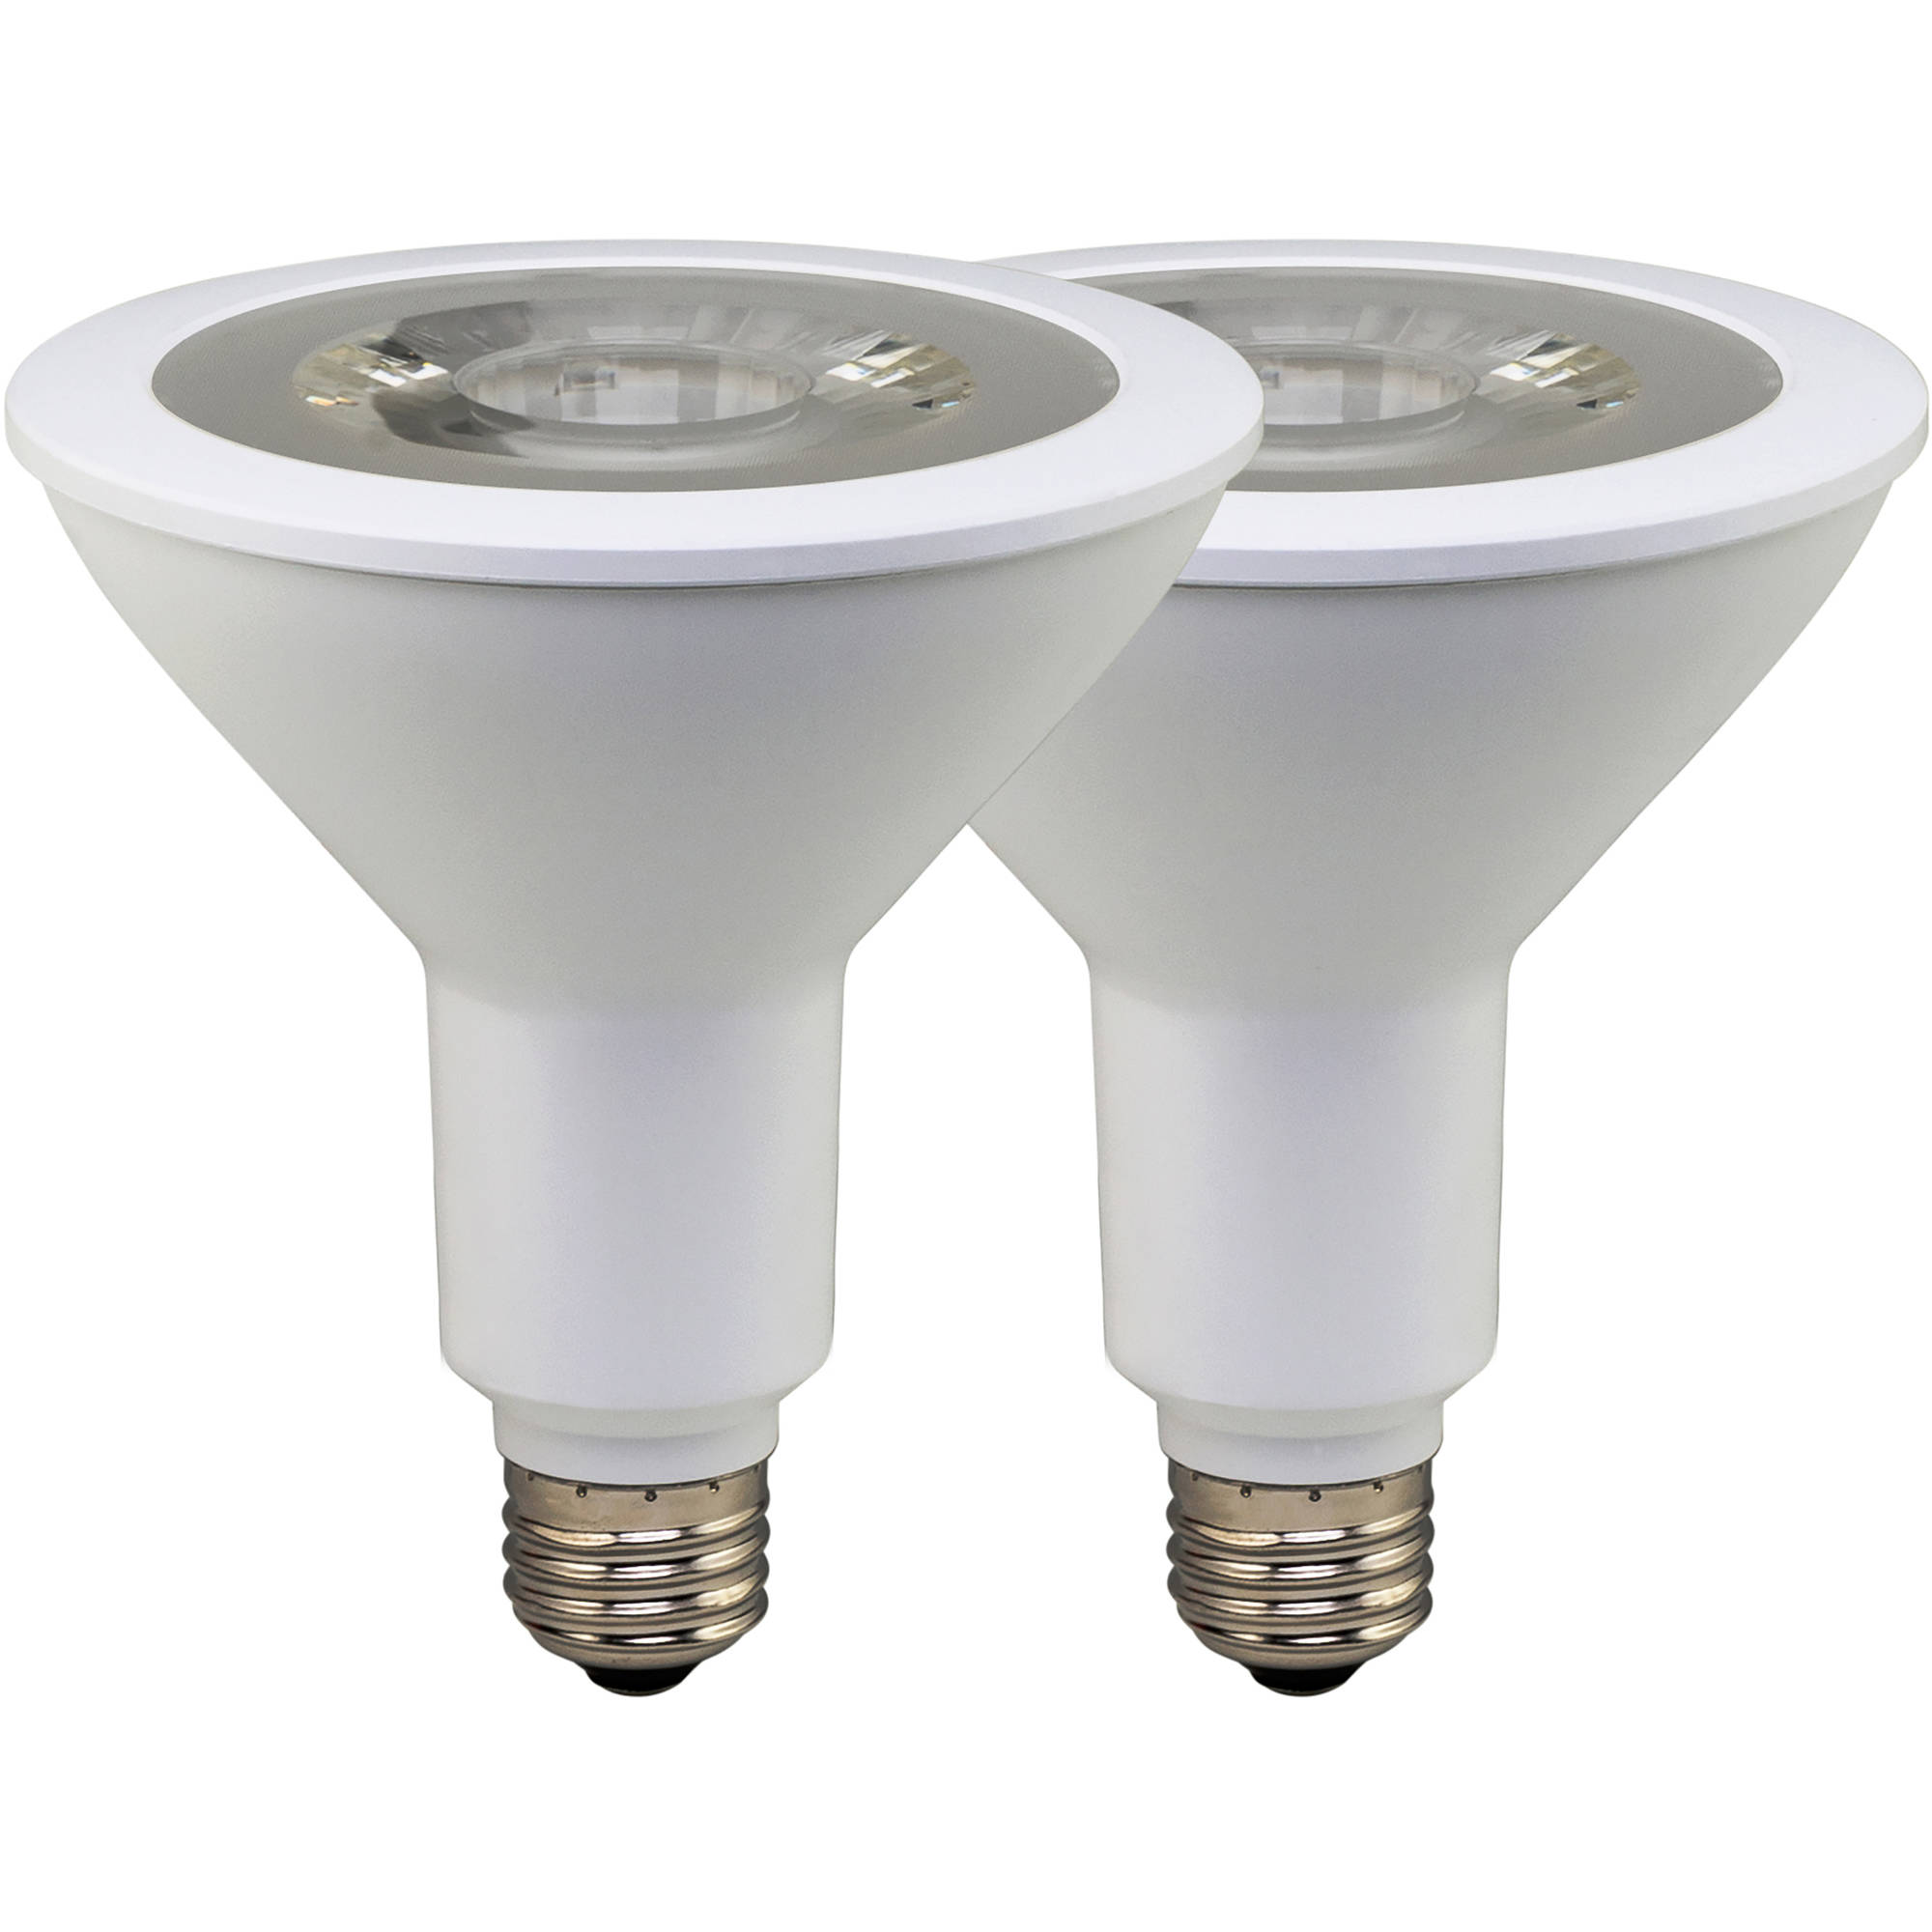 Brinks LED Outdoor Security Light Bulbs, 13W (90W Equivalent), 2-Count